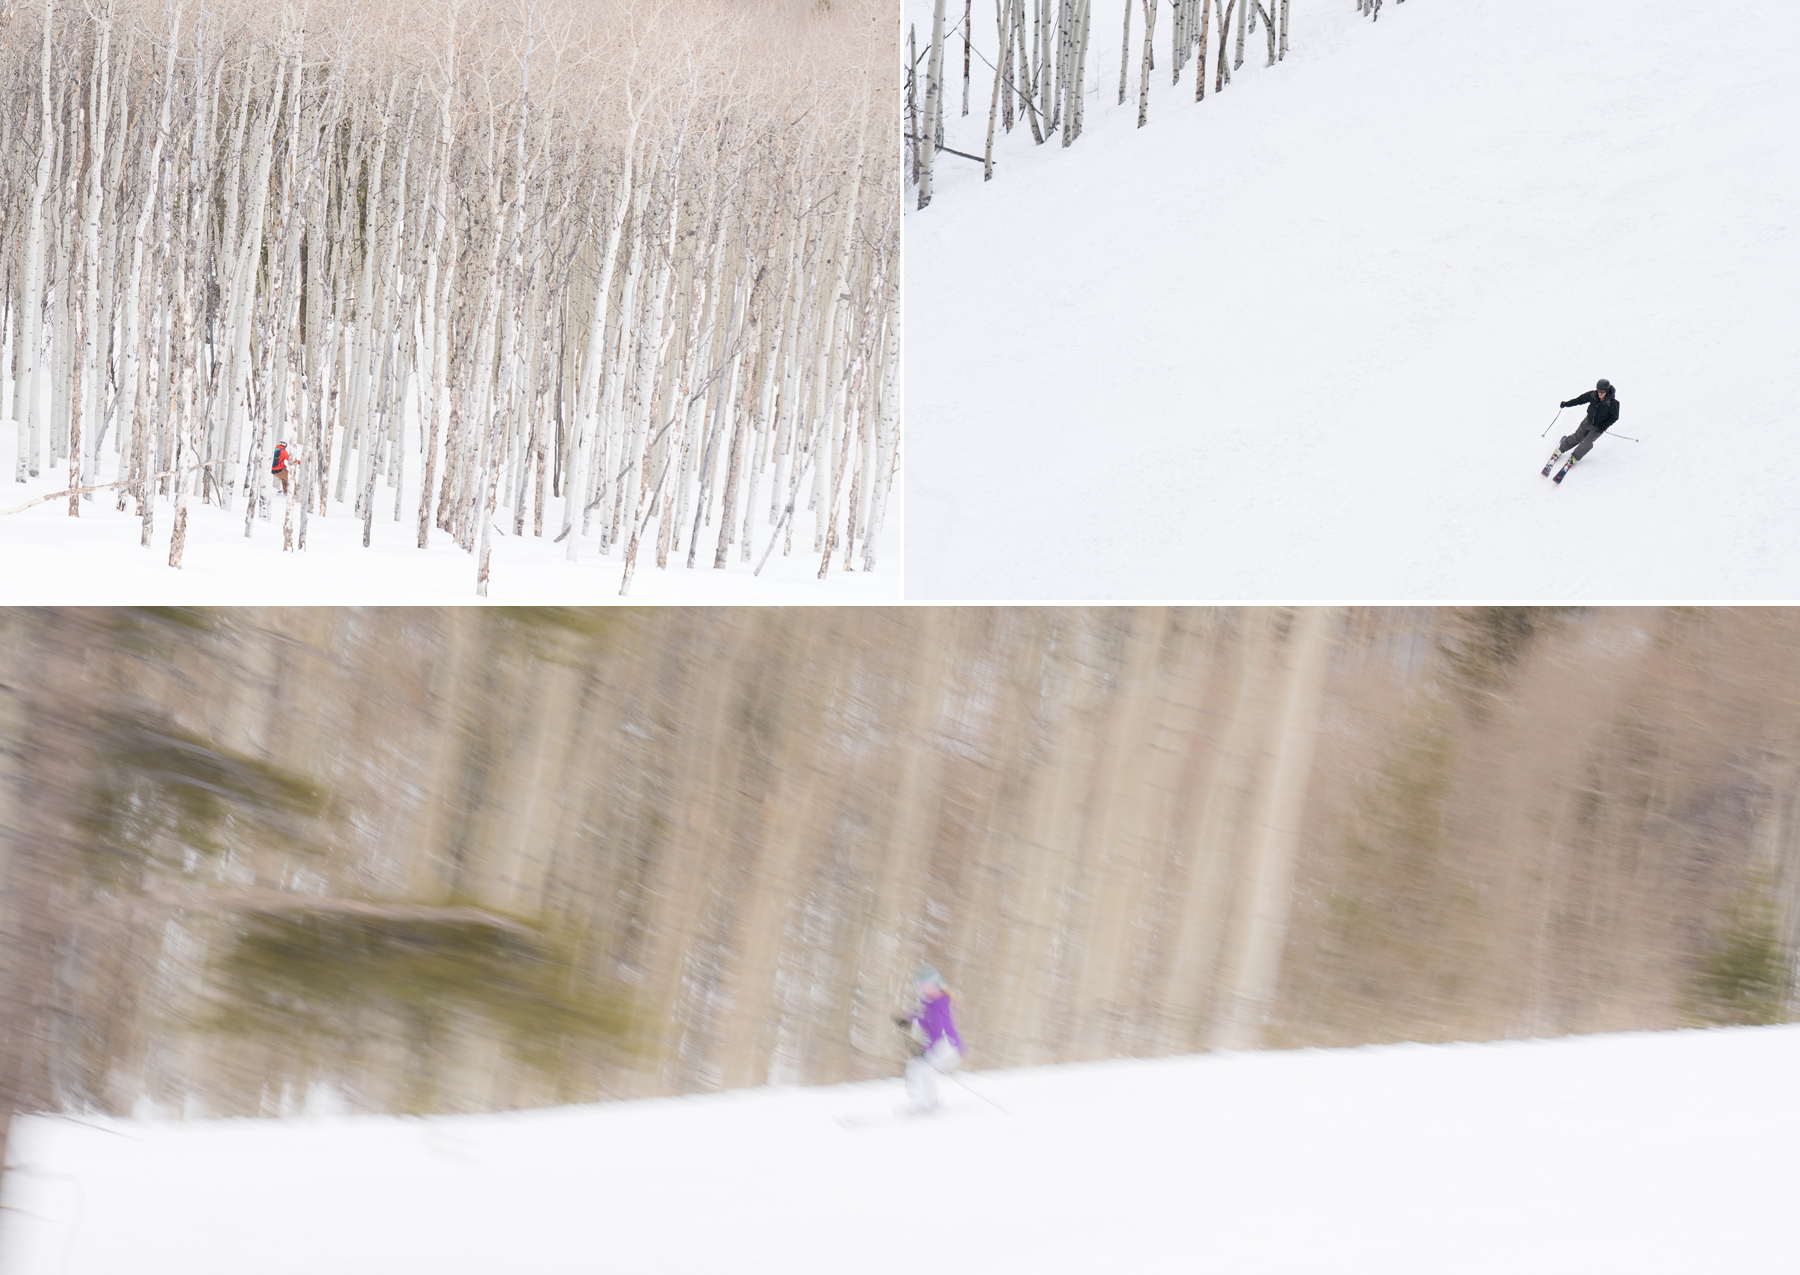 vail, bachelor gulch, ritz, skiing, jensen sutta event photography